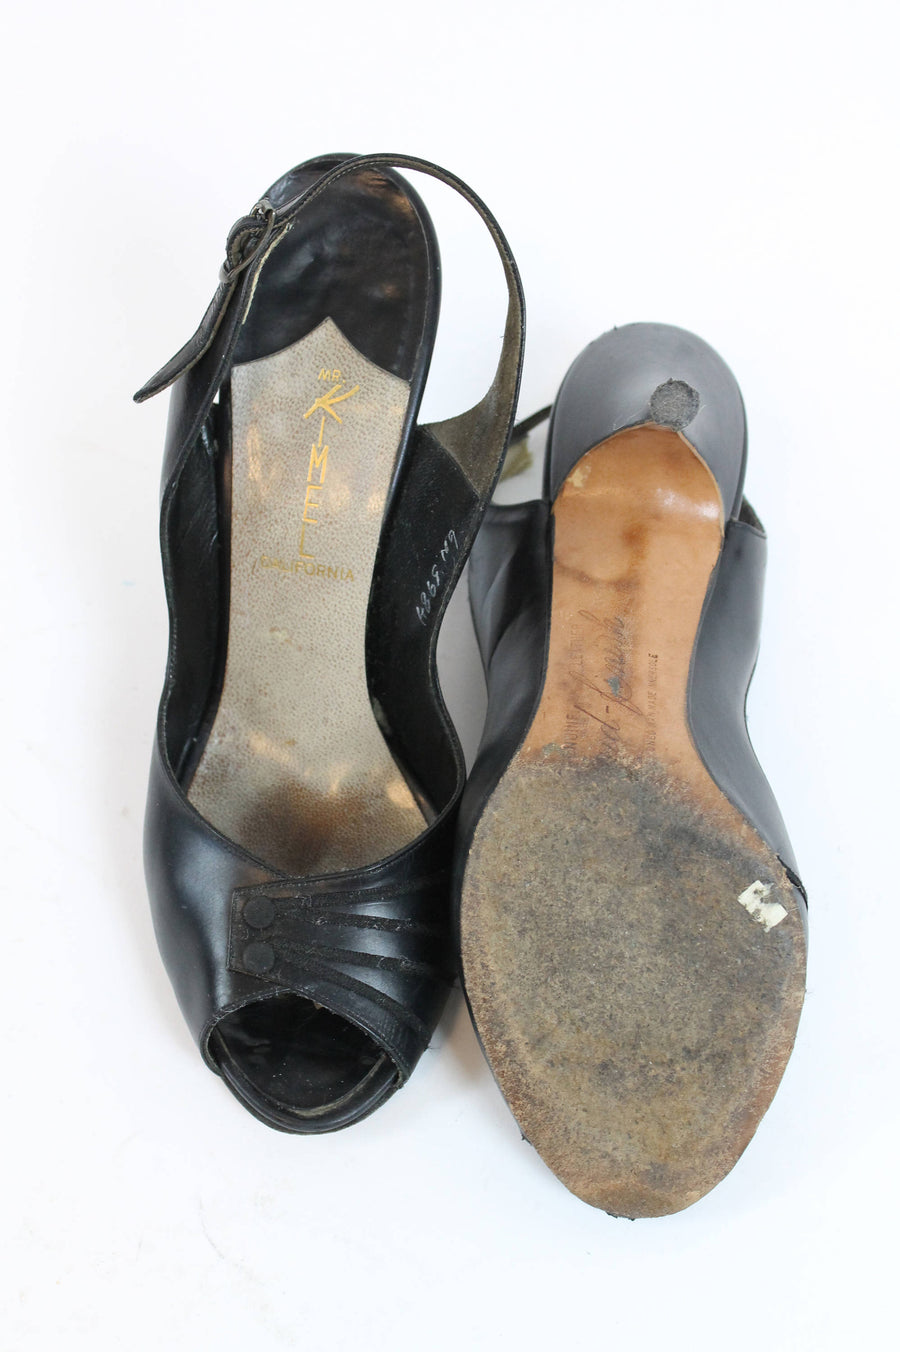 1950s peep toe shoes size 5.5 us | vintage slingbacks | new in